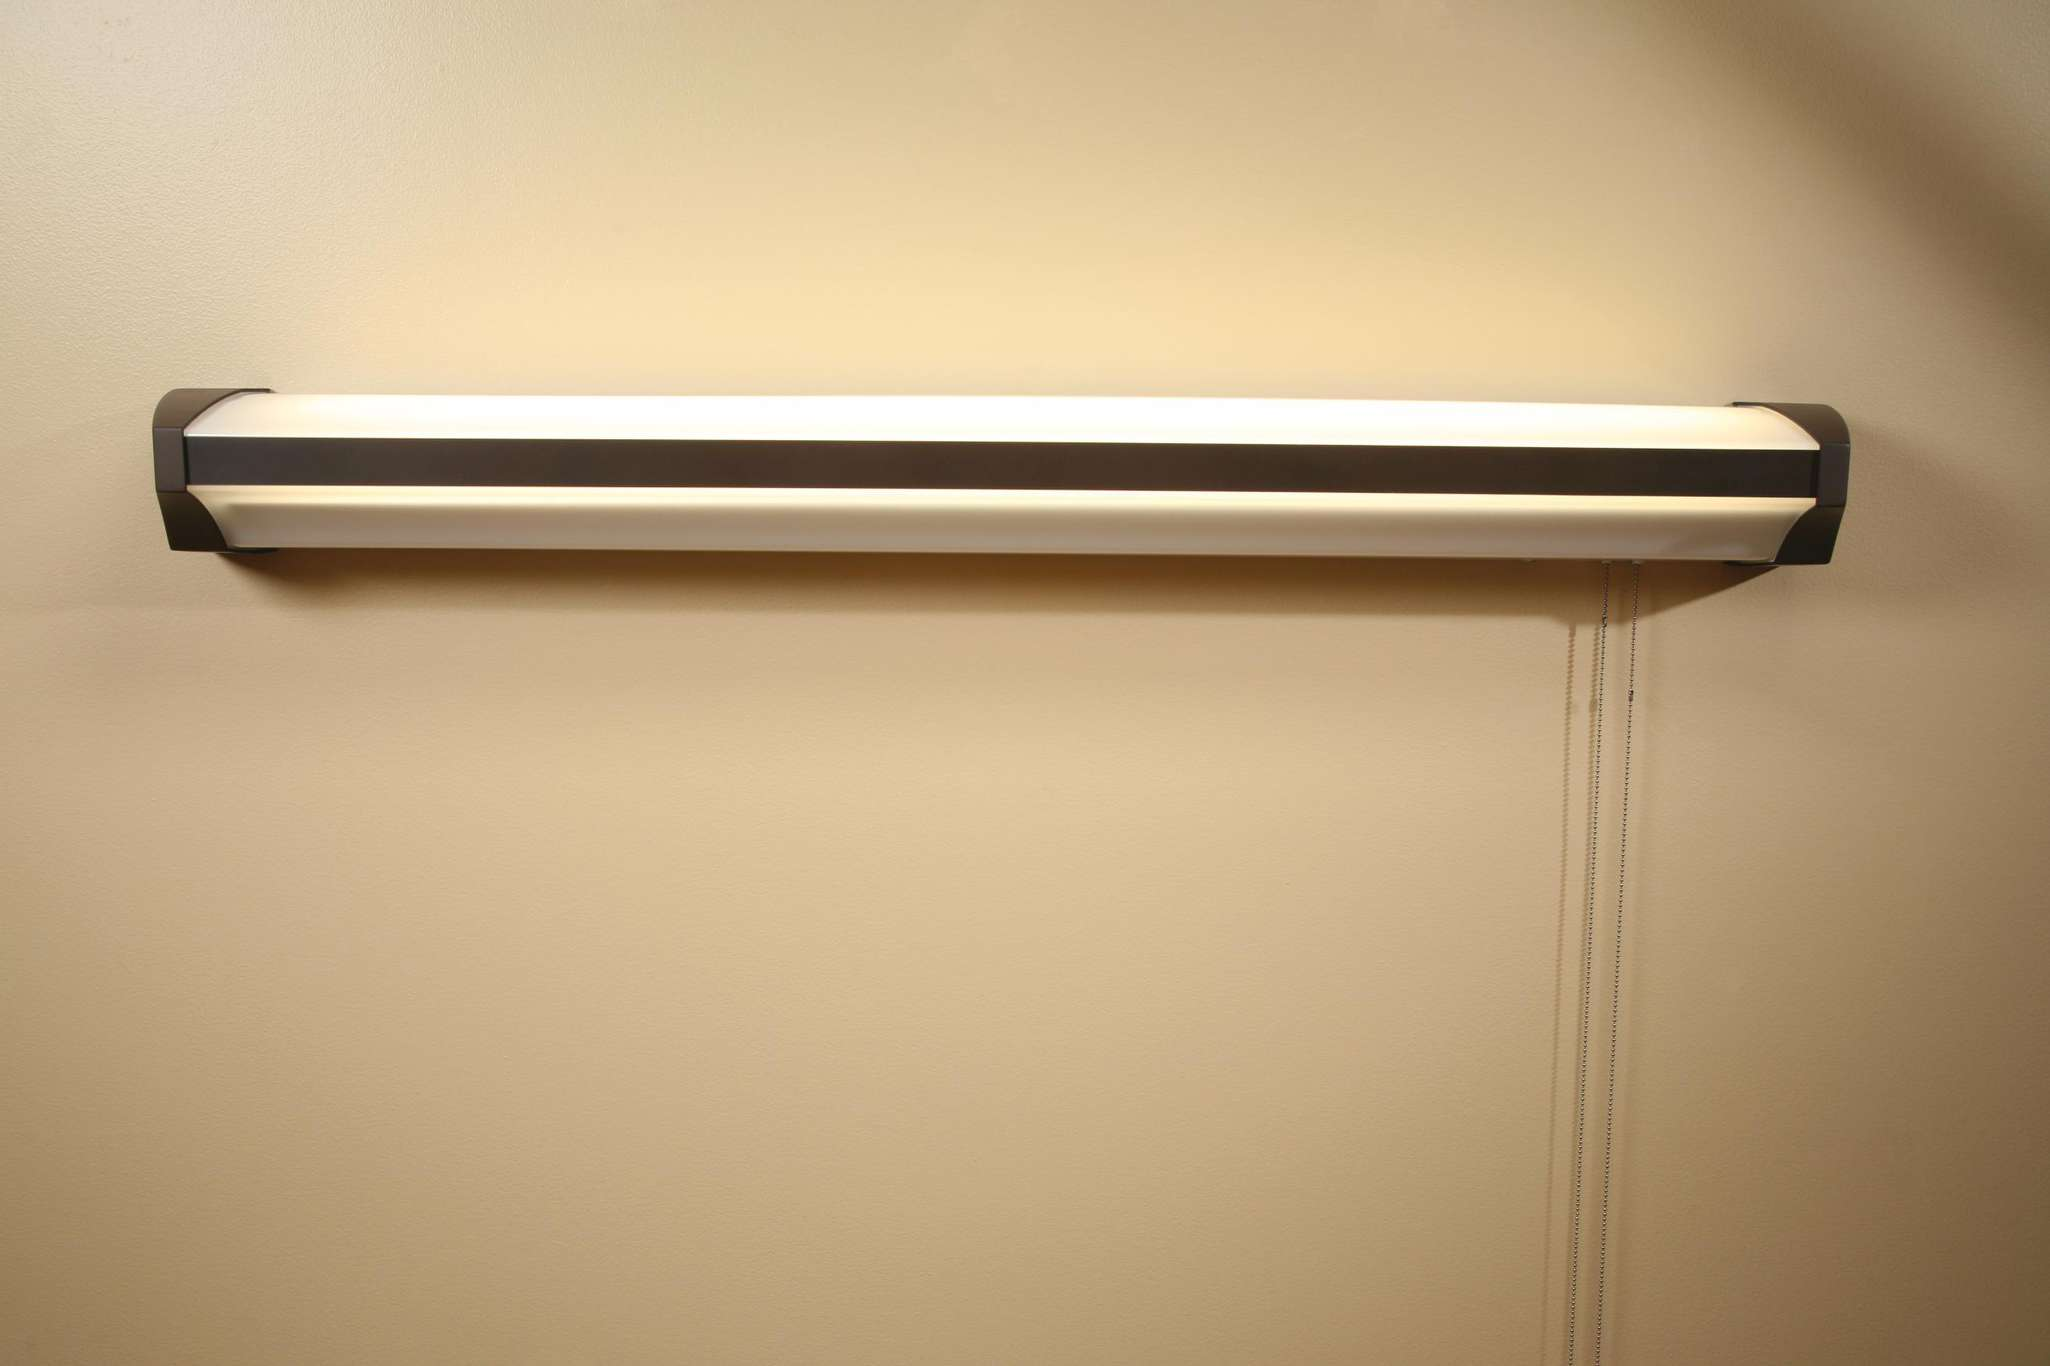 Over Bed Lights Plymouth Led Overbed Light With Pull Chain 4 Ft